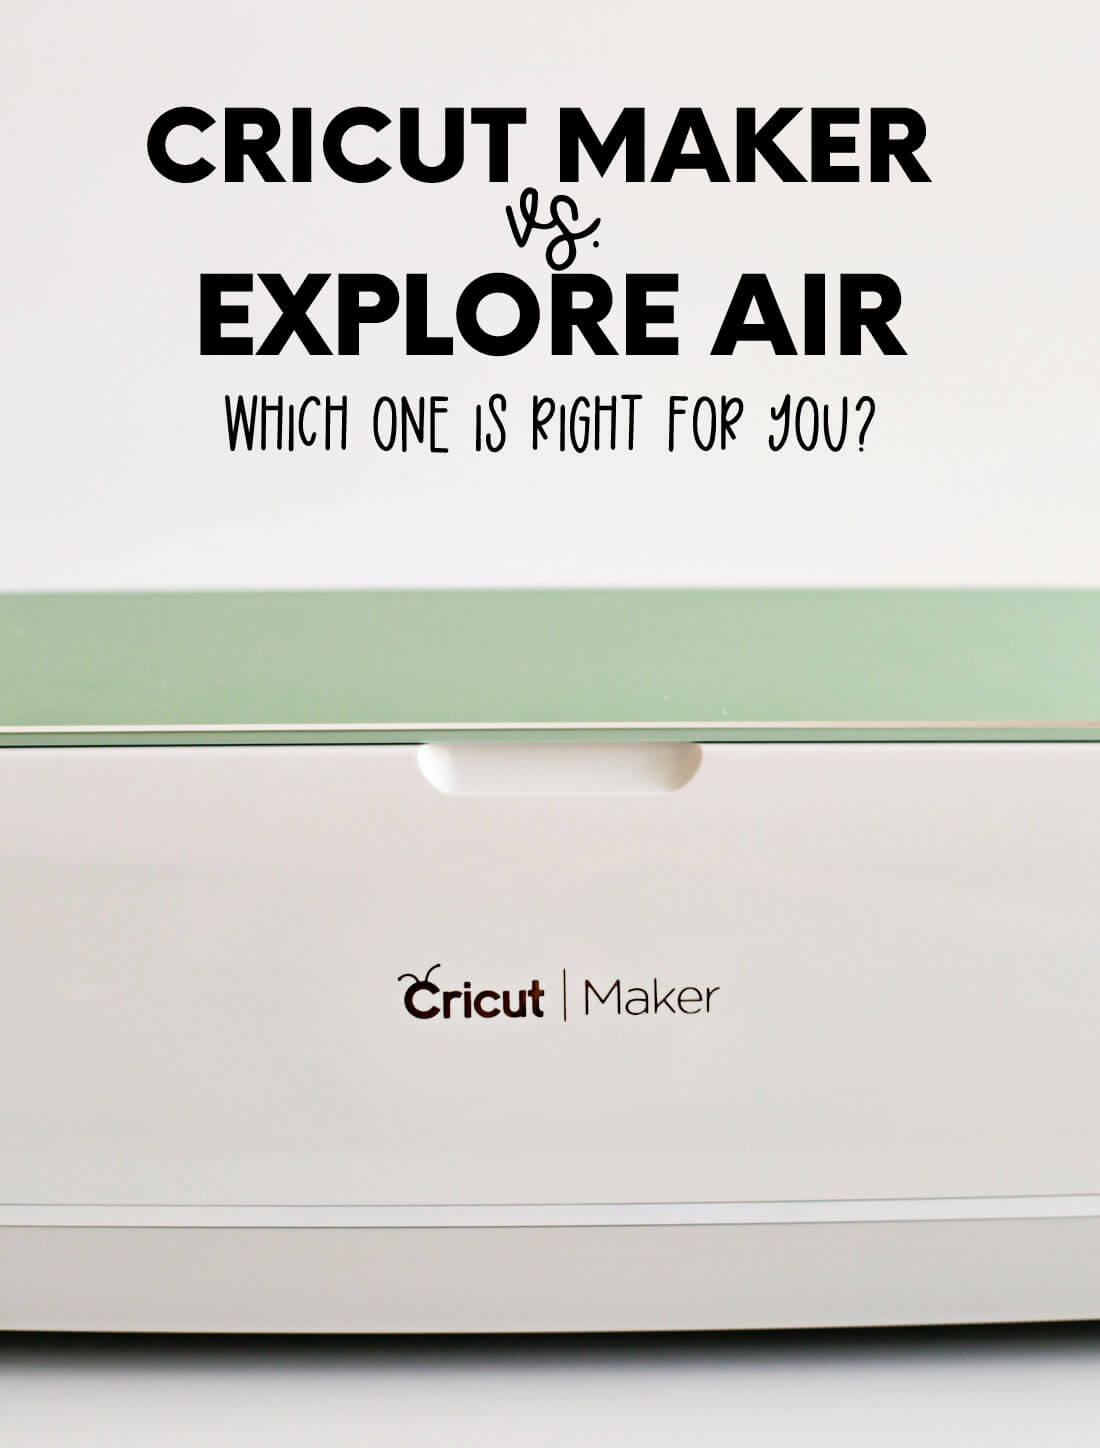 Cricut Maker vs. Explore Air - which one is right for you?